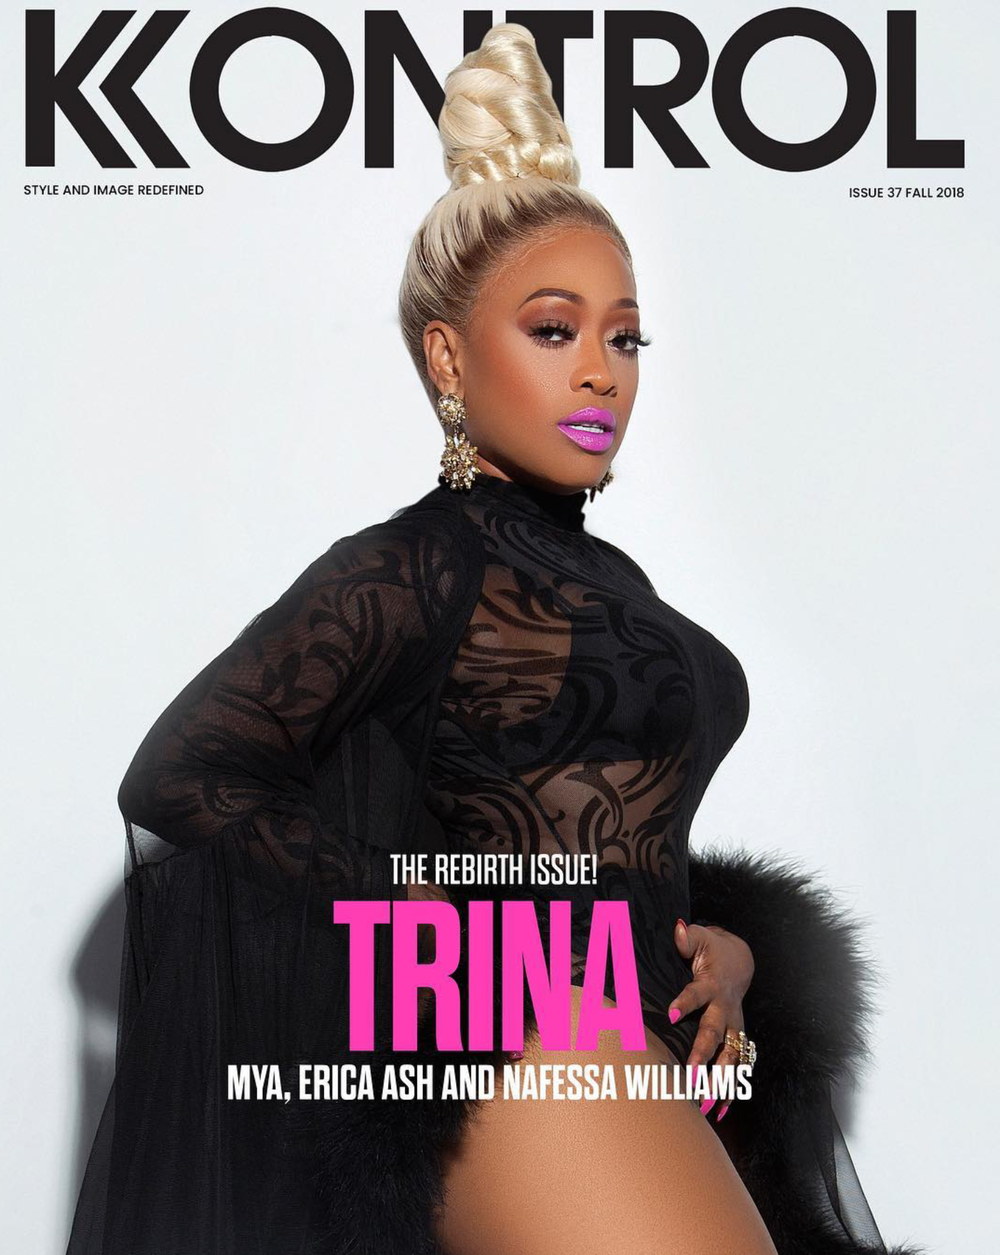 "- Trina (Cover 3) Kontrol Magazine ""The Rebirth Issue)Photo Credit: Will KennedyCreative Director: Chanan Nicole KennedyWardrobe Stylist: Julian LarkStyling Assistants: IMSOSHINGO & Blonde Hair'd GirlHair: Leatha La'ShayMUA: M LatriceWardrobe: REVEL by Julian Lark & The Ivy Showroom"